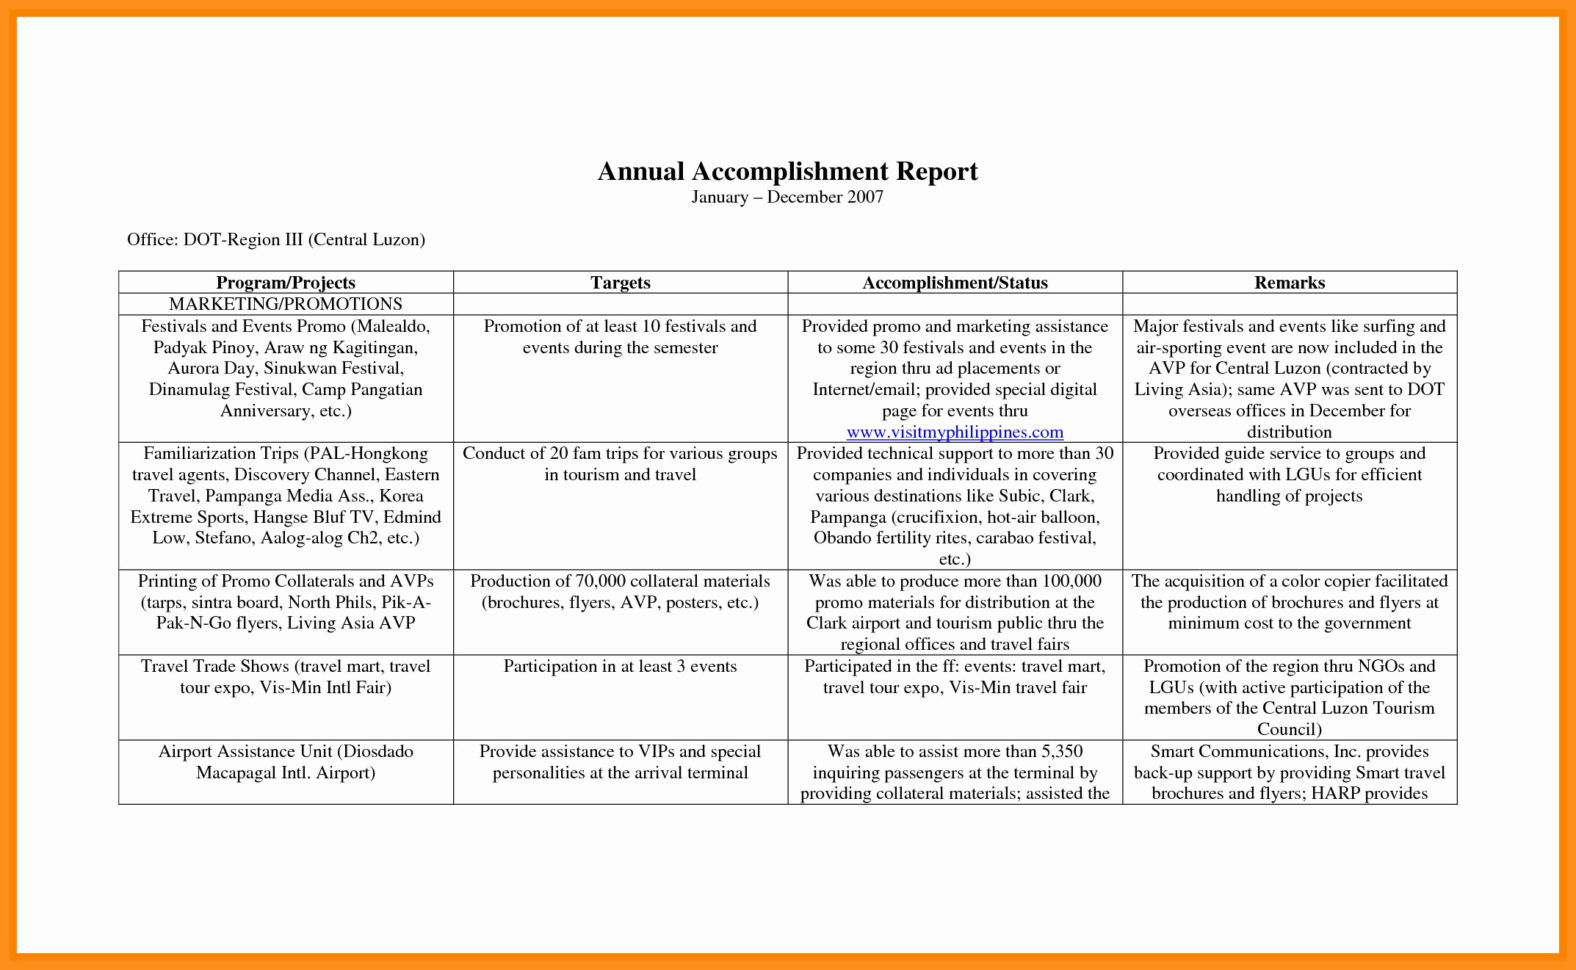 Annual Budget Report Template Awesome Samples Of Budget Spreadsheets Throughout Samples Of Budget Spreadsheets